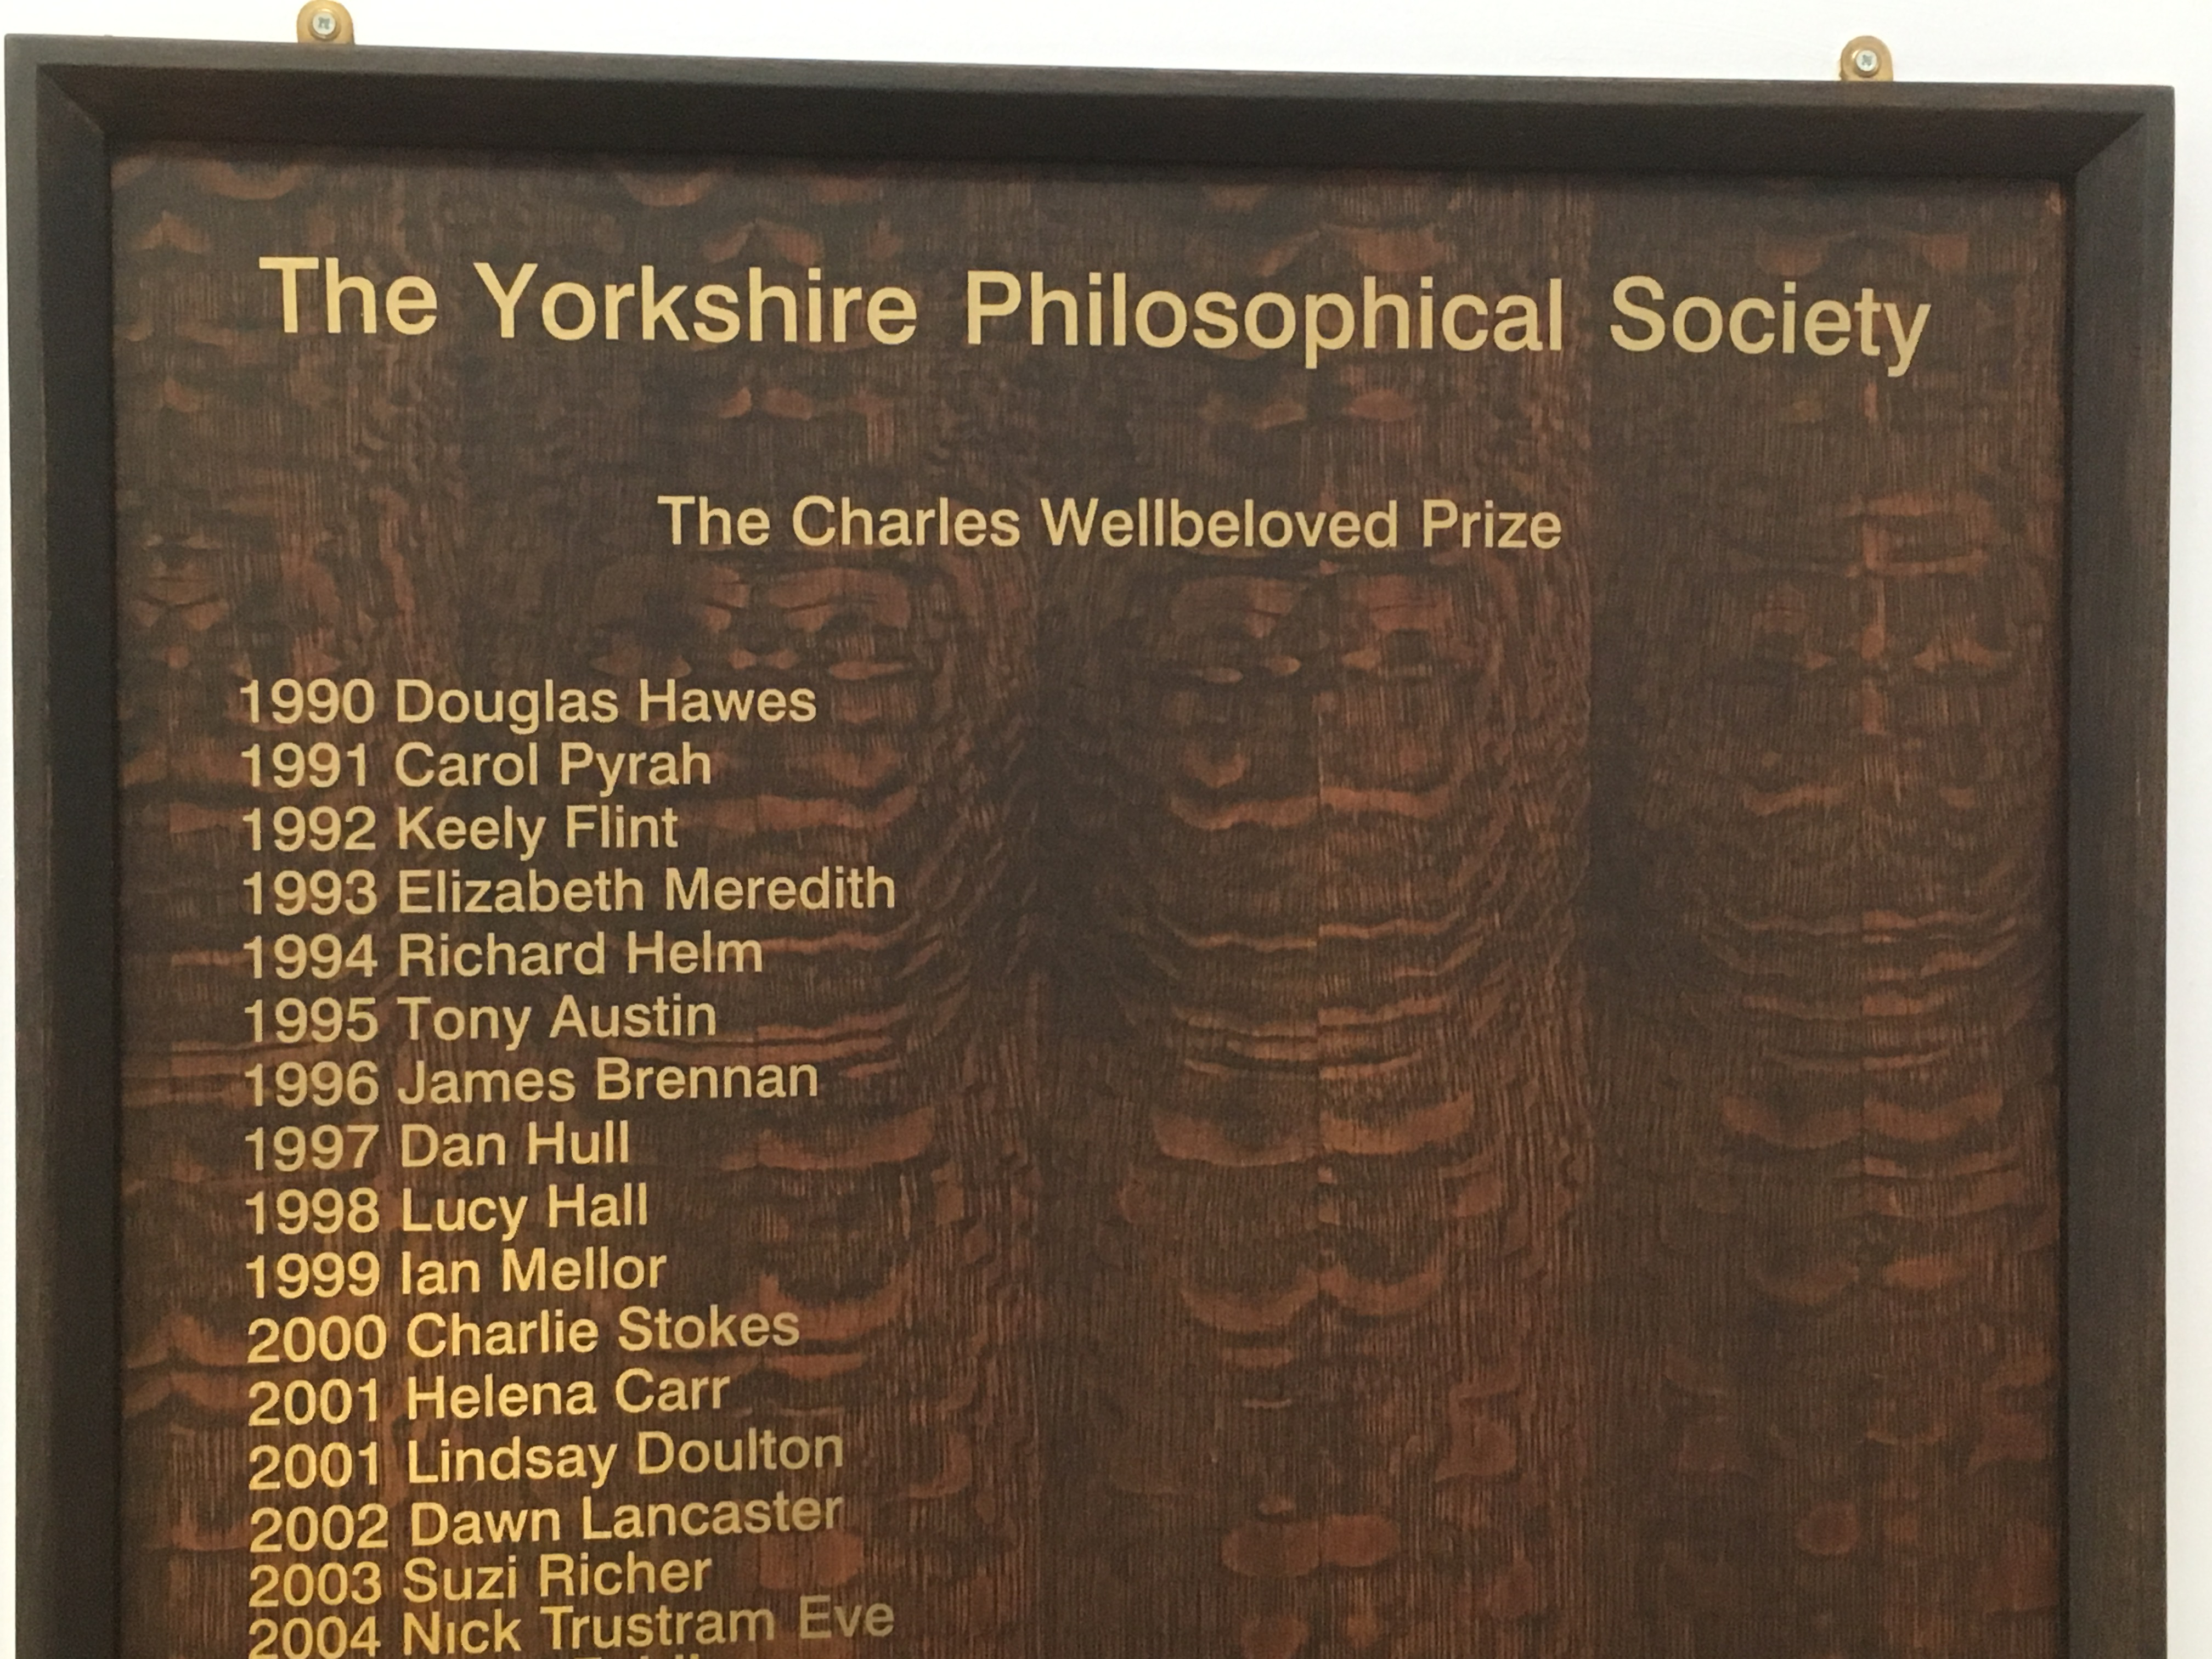 Photograph of the Charles Wellbeloved prize winners board located in the Archaeology Department. Tony's name is listed as prize winner for 1995.